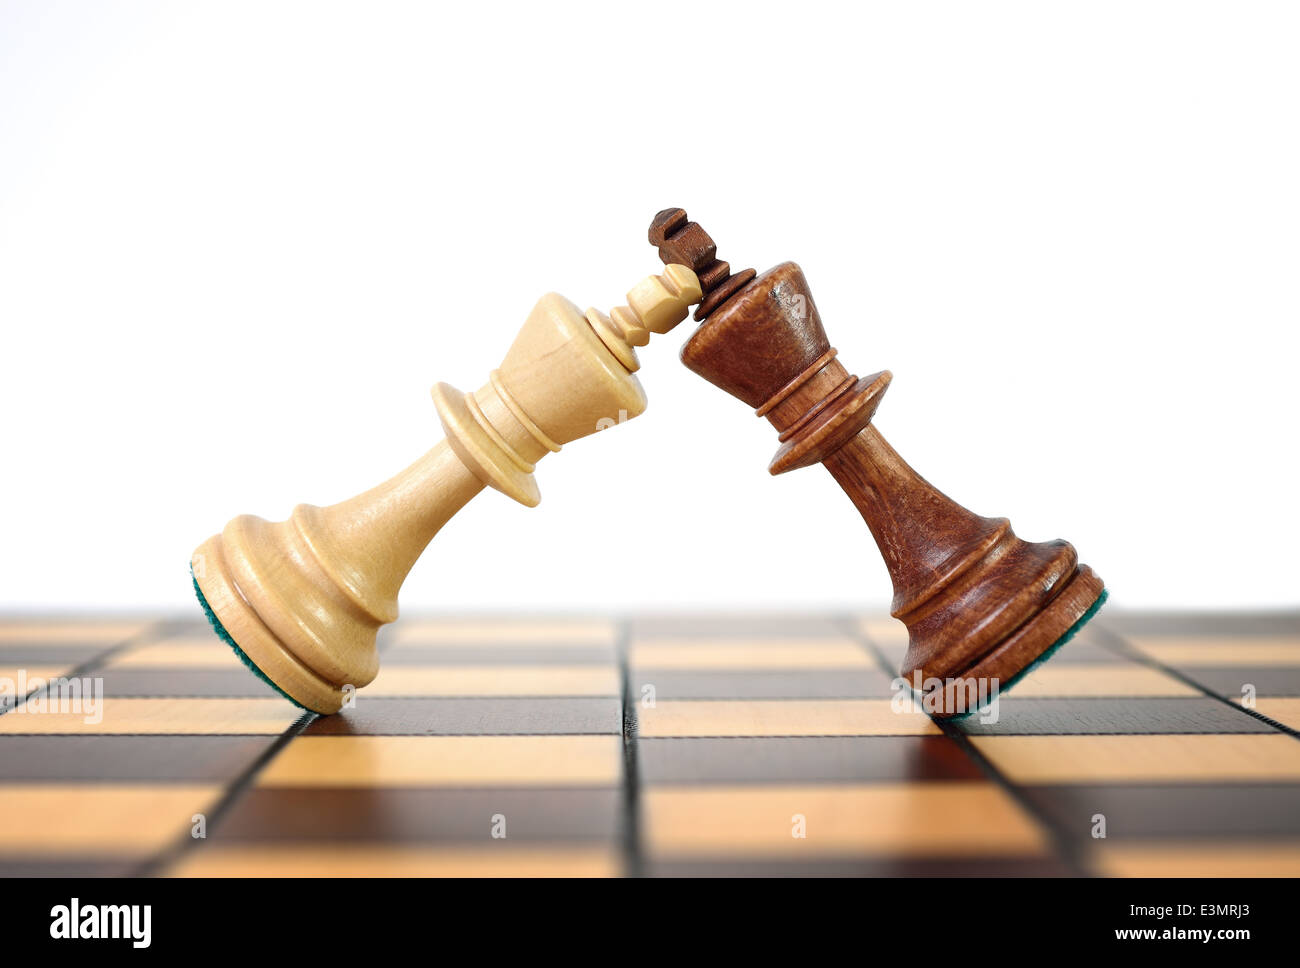 Kings chess duel. Duel rulers. - Stock Image